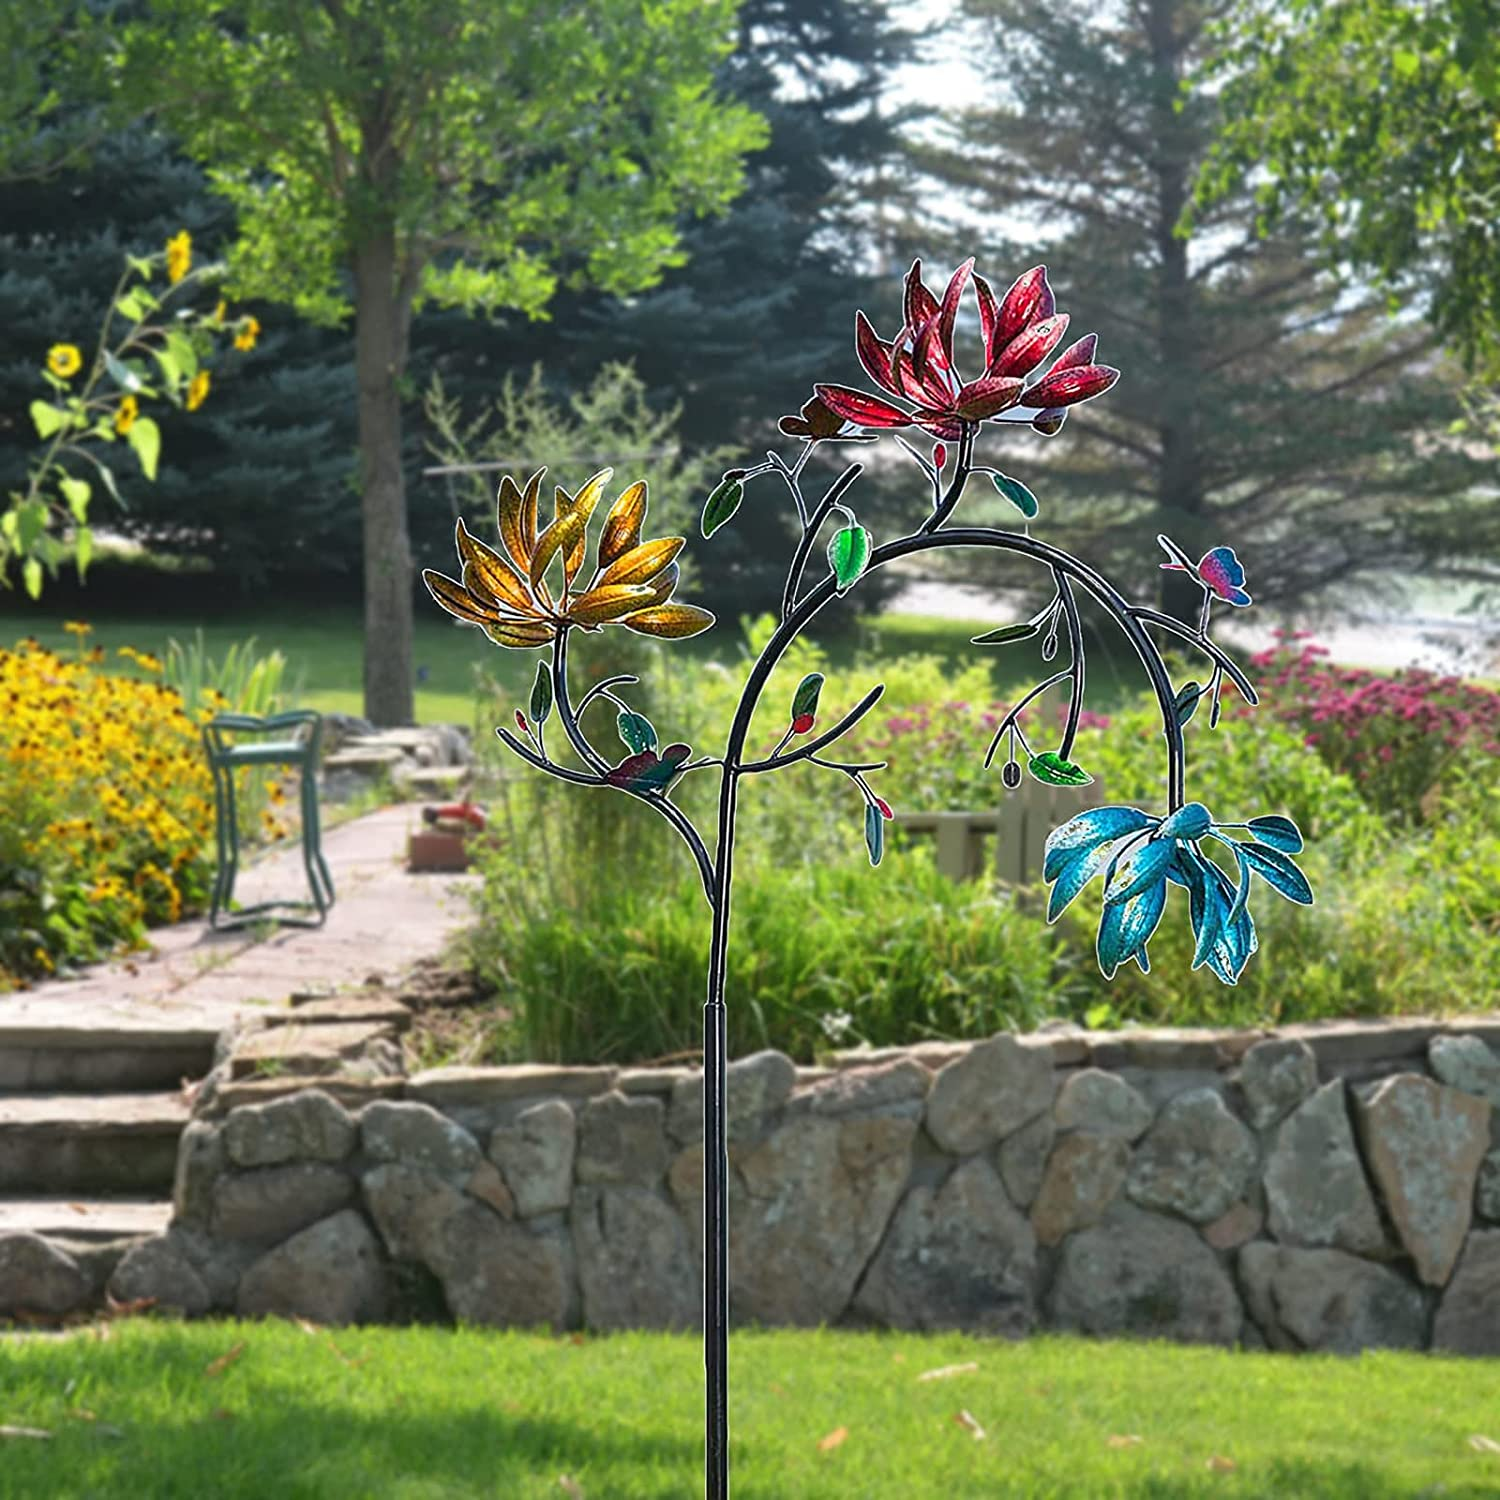 Eangju Large Metal Wind Spinner with Three Spinning Flowers and Butterflies Windmill for Yard and Garden Outdoor Art Decoration (Multicolor)